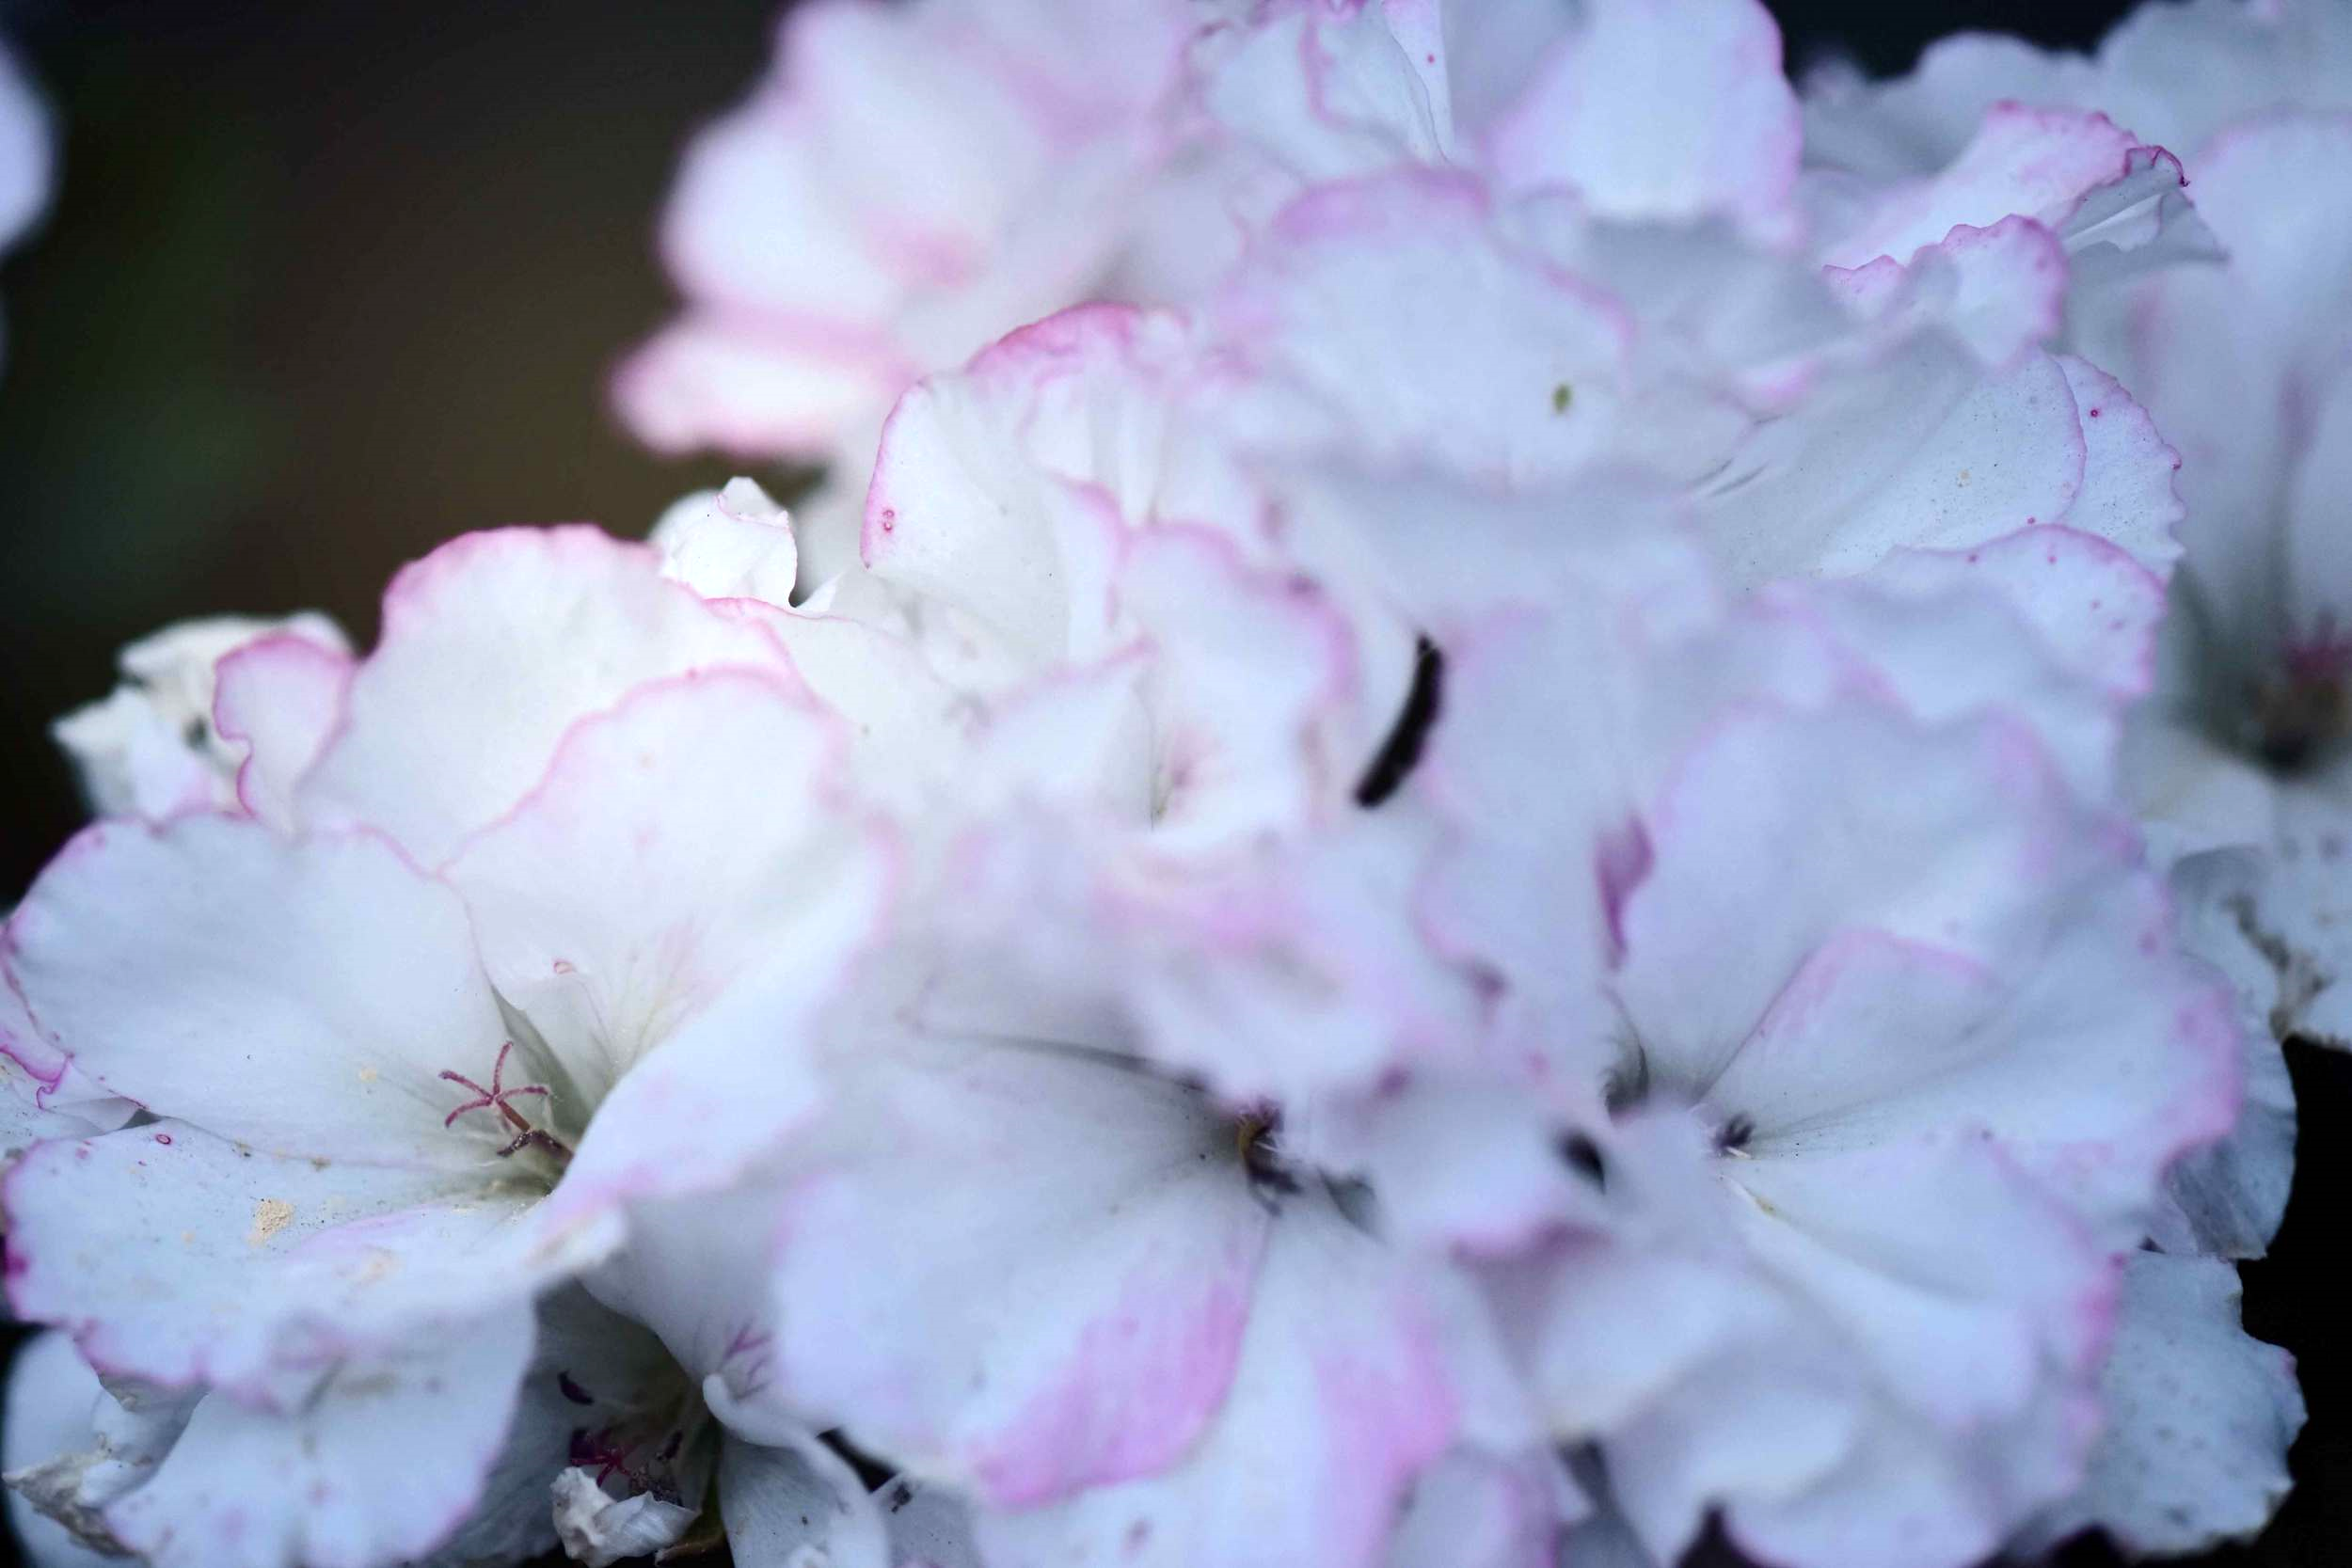 White and lilac flowers, Photo: Nicola Nolting, Image©sourcingstyle.com